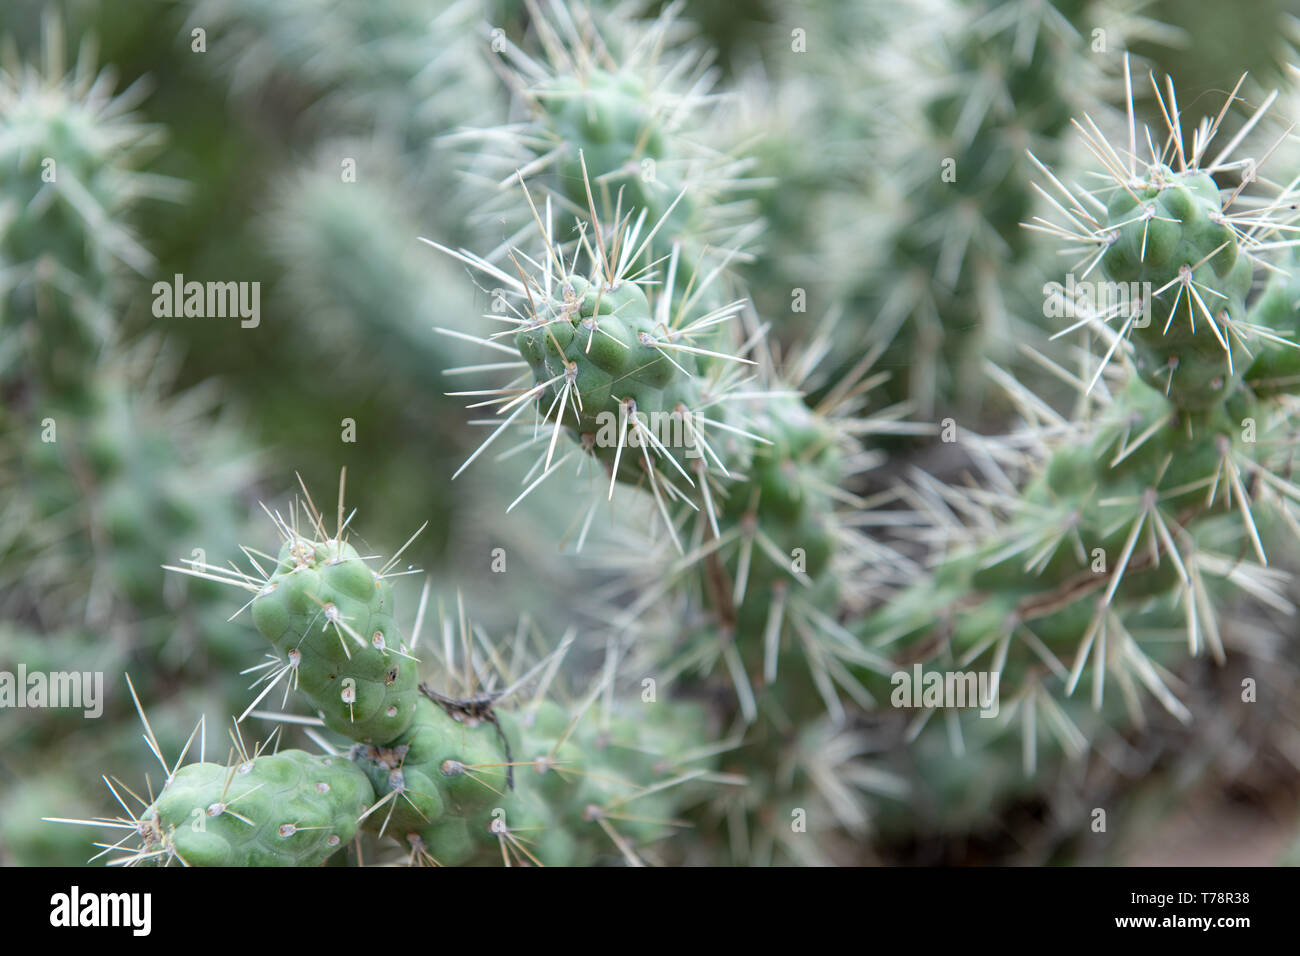 Jumping cholla (Cylindropuntia fulgida) in Tucson, Arizona, USA - Stock Image